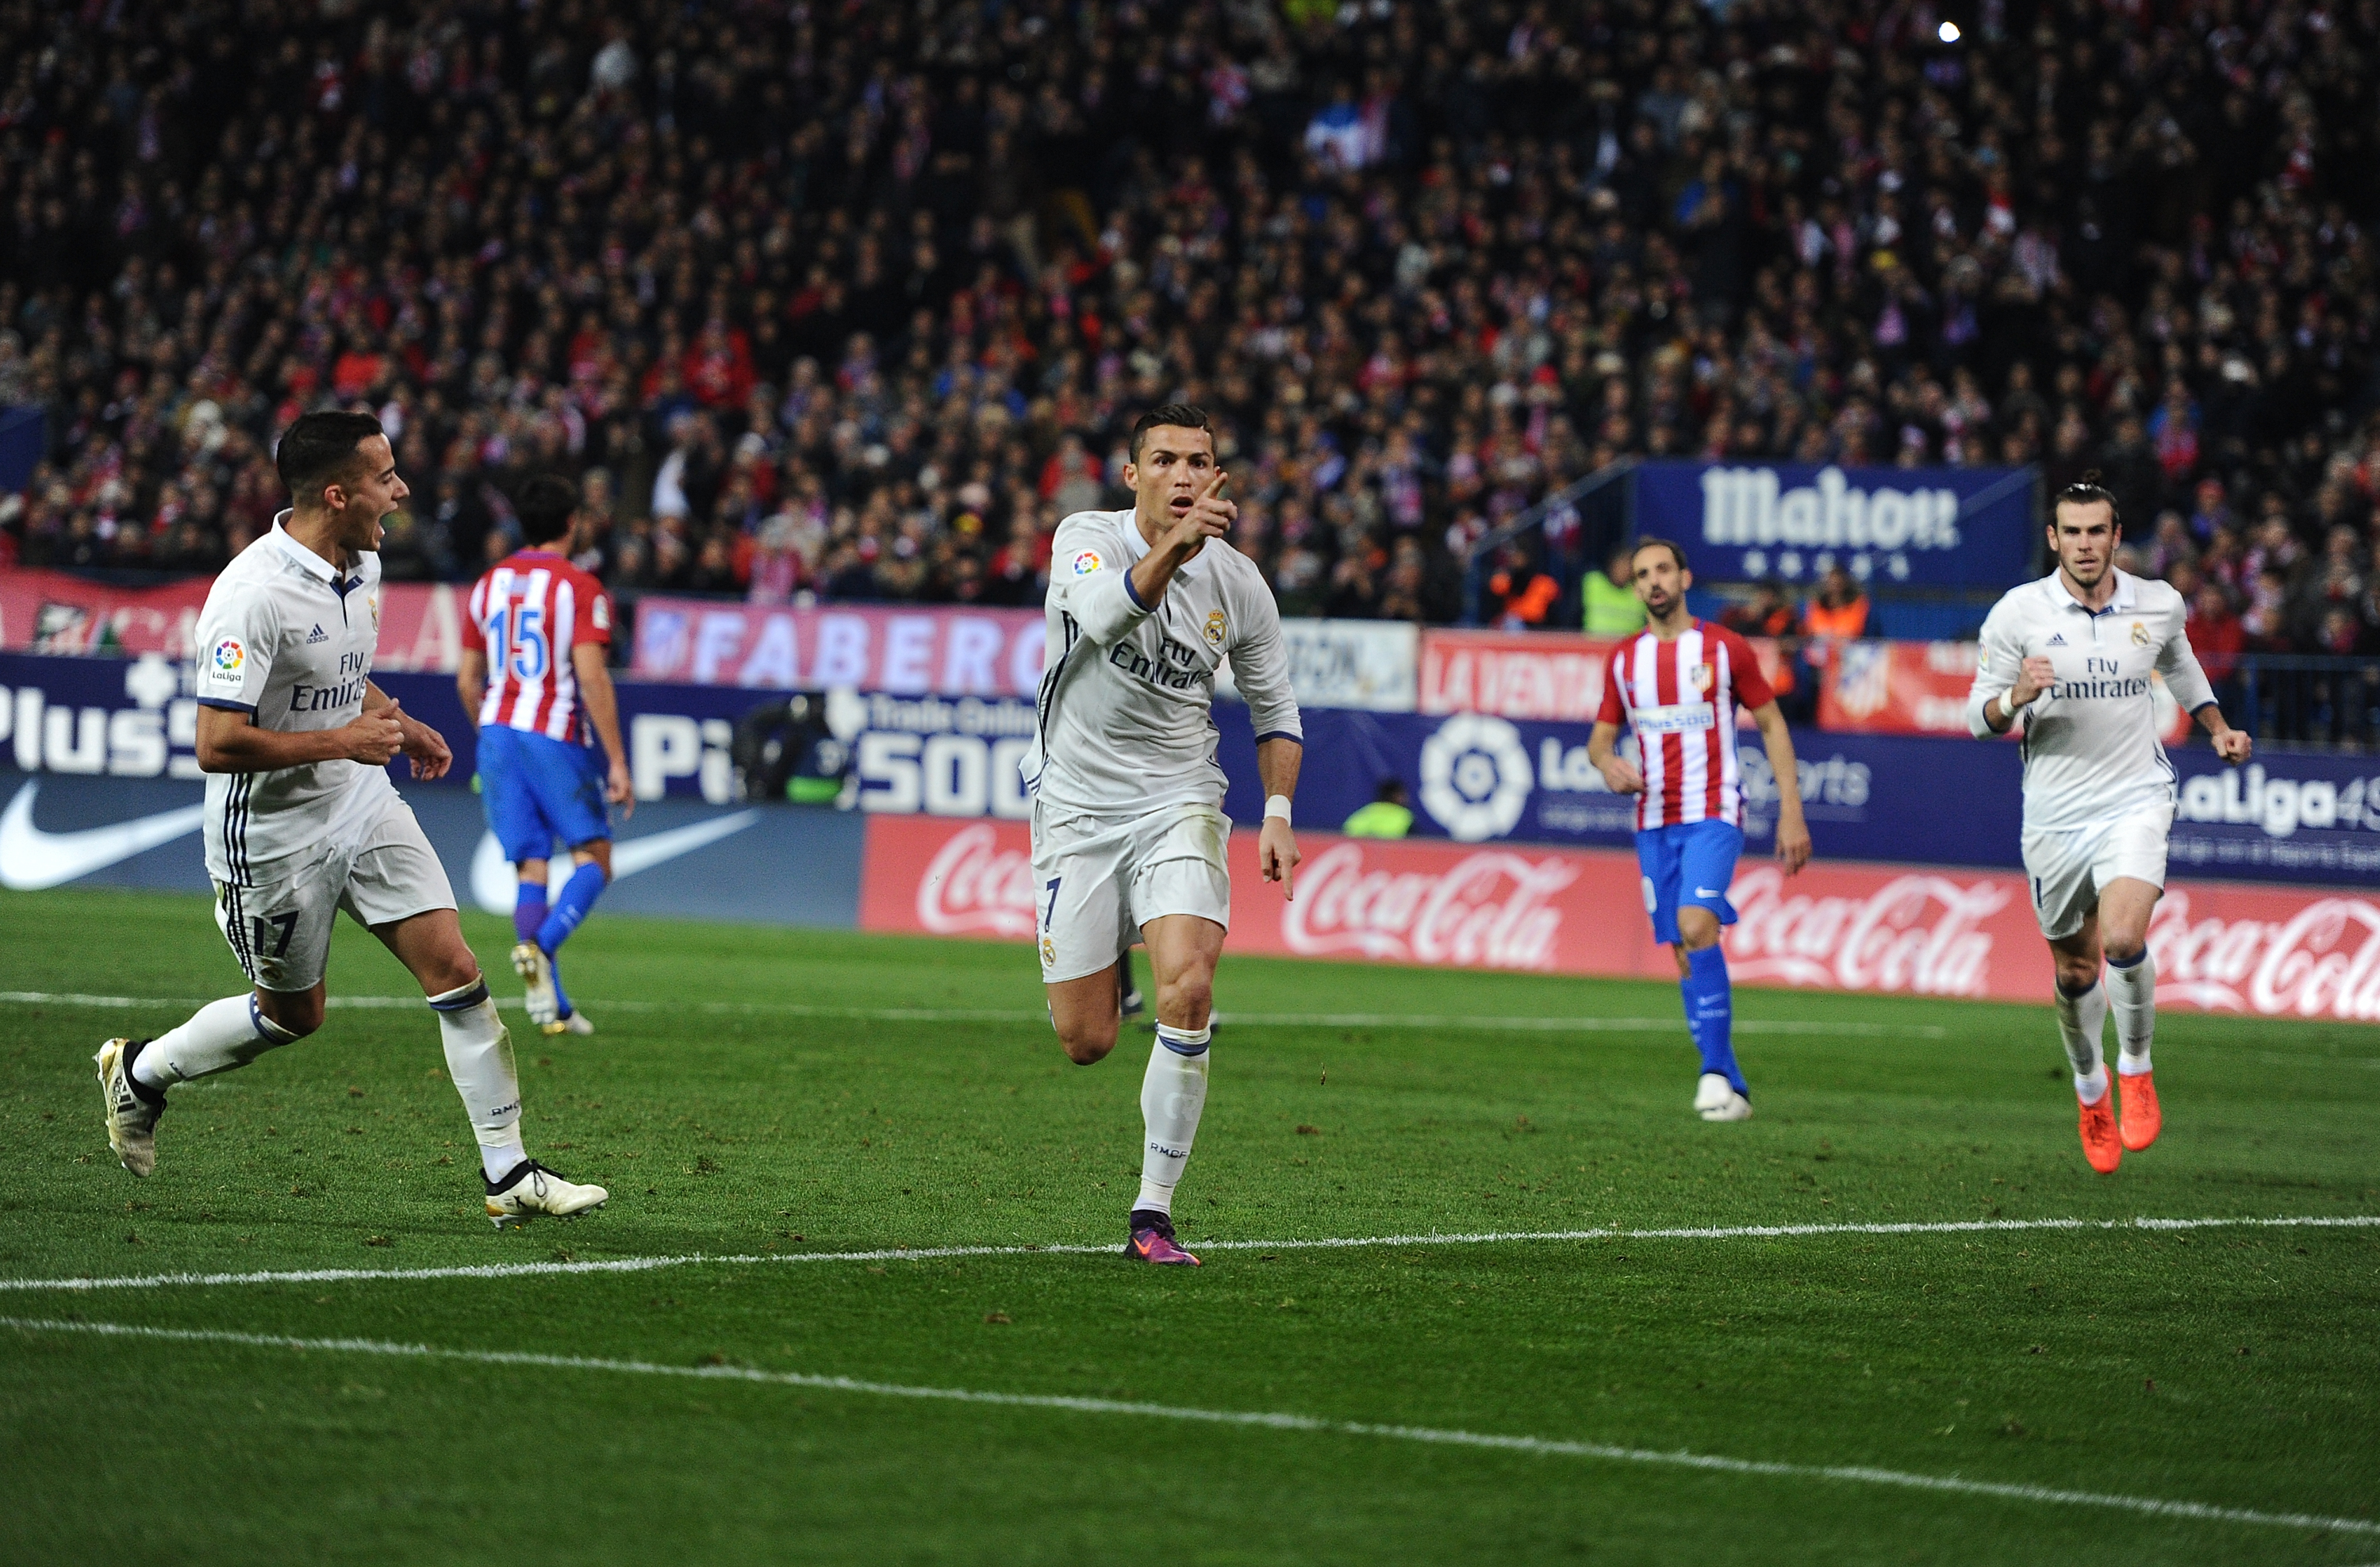 Atletico Madrid Vs Real Madrid: Real Madrid Flatten Atletico; Player Ratings